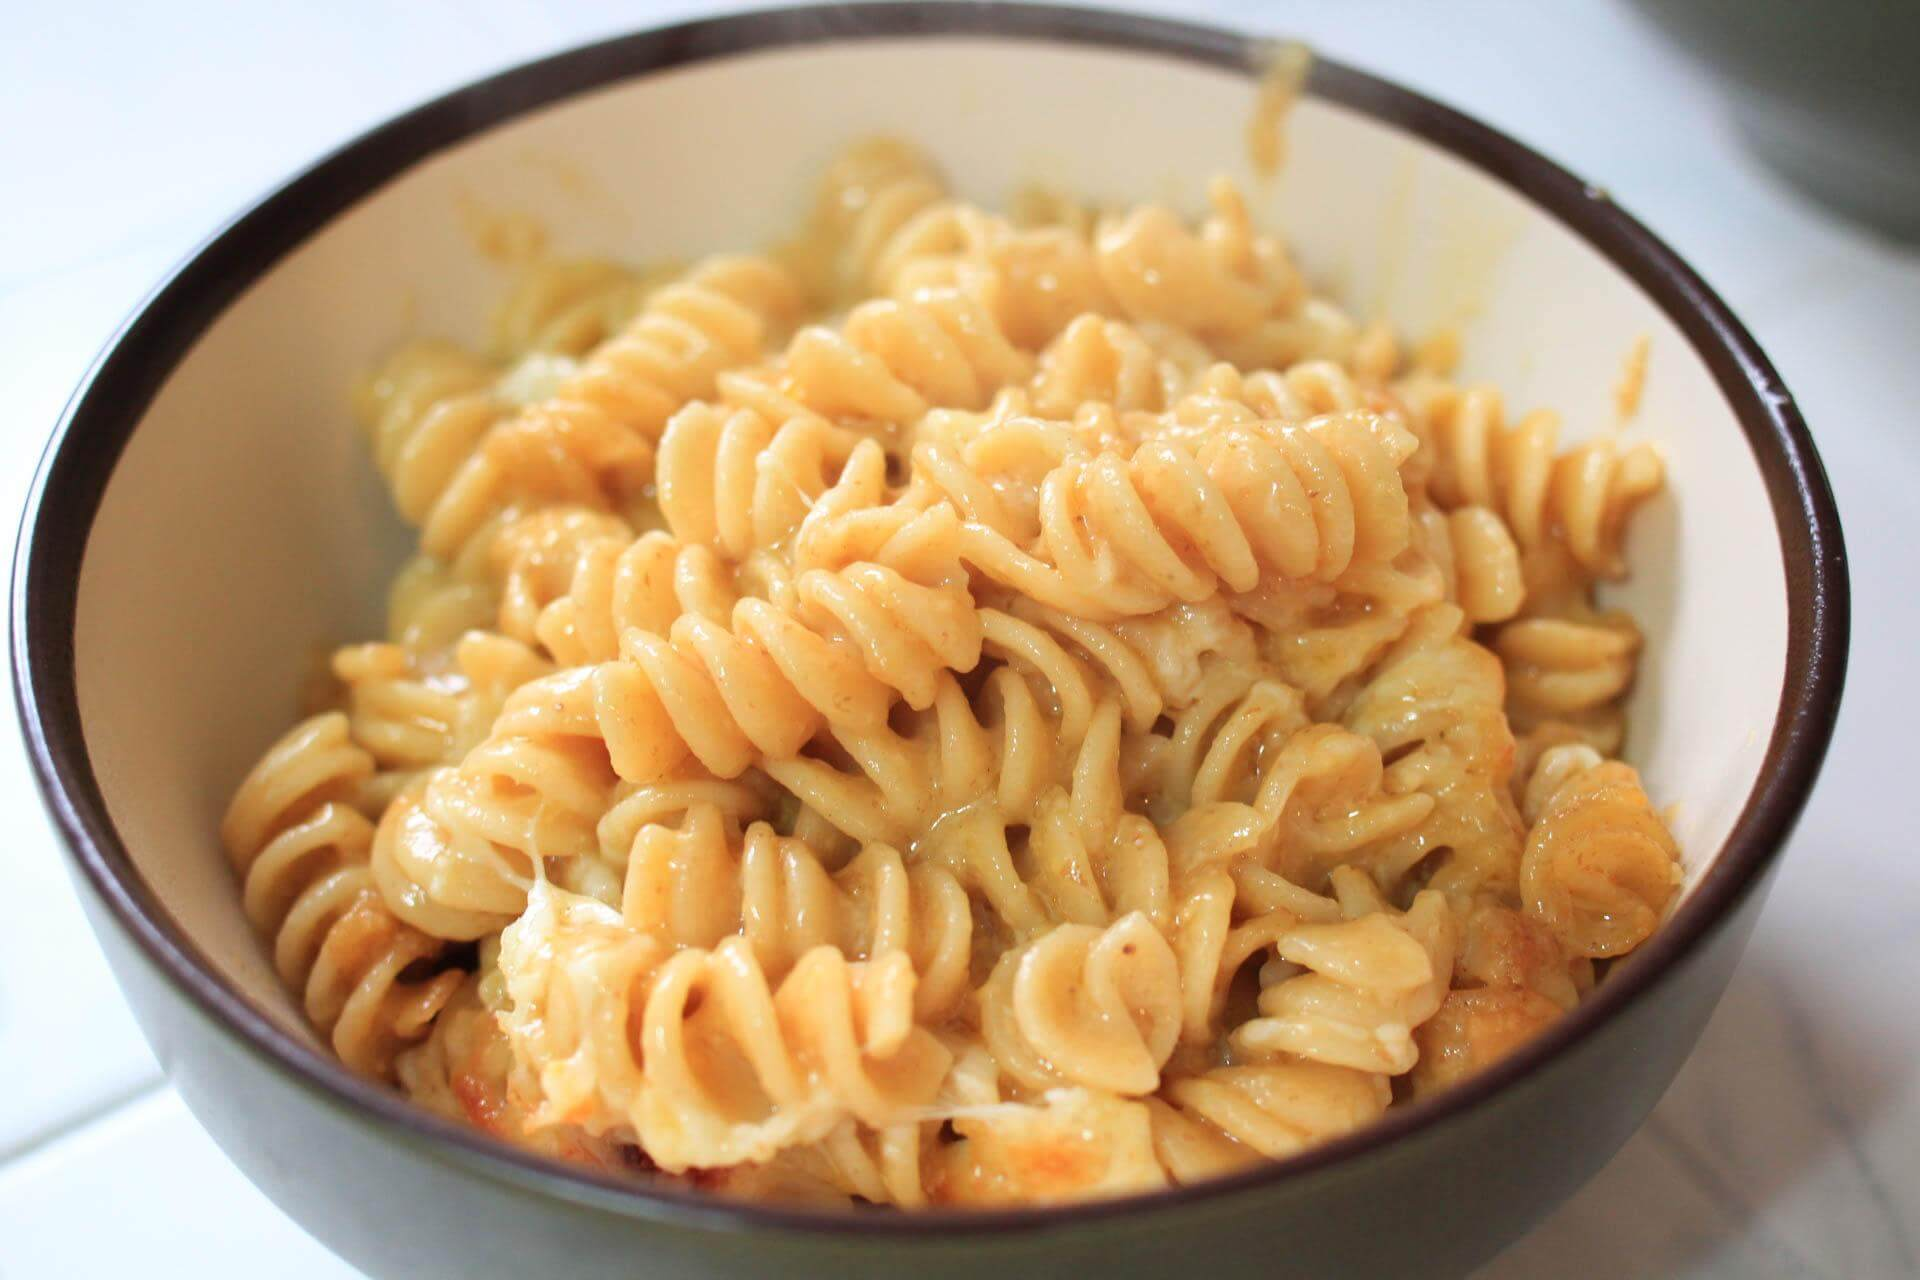 Unseasoned macaroni and cheese in a bowl